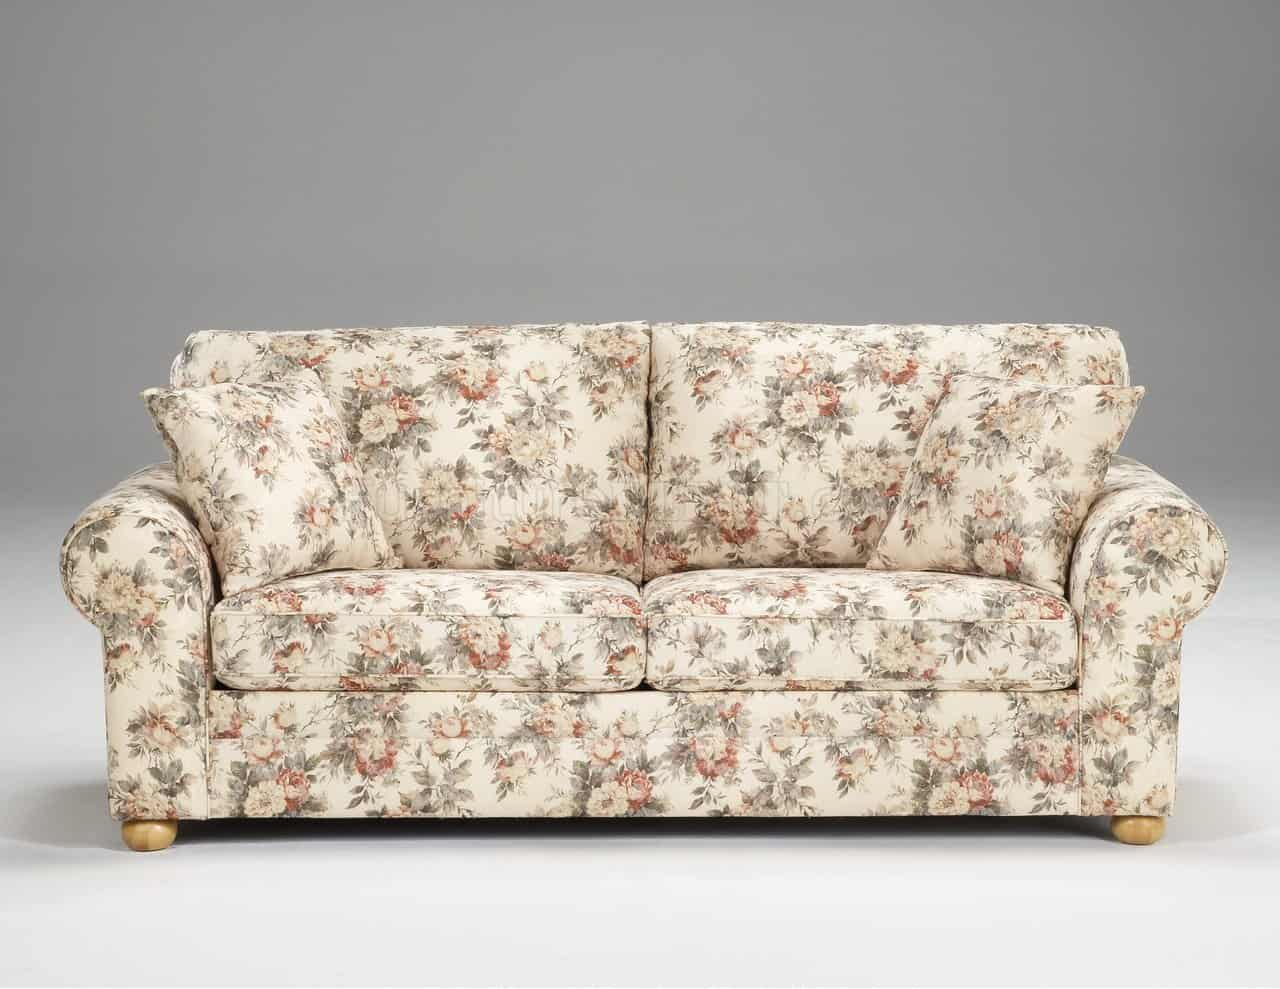 DIY Floral Couch